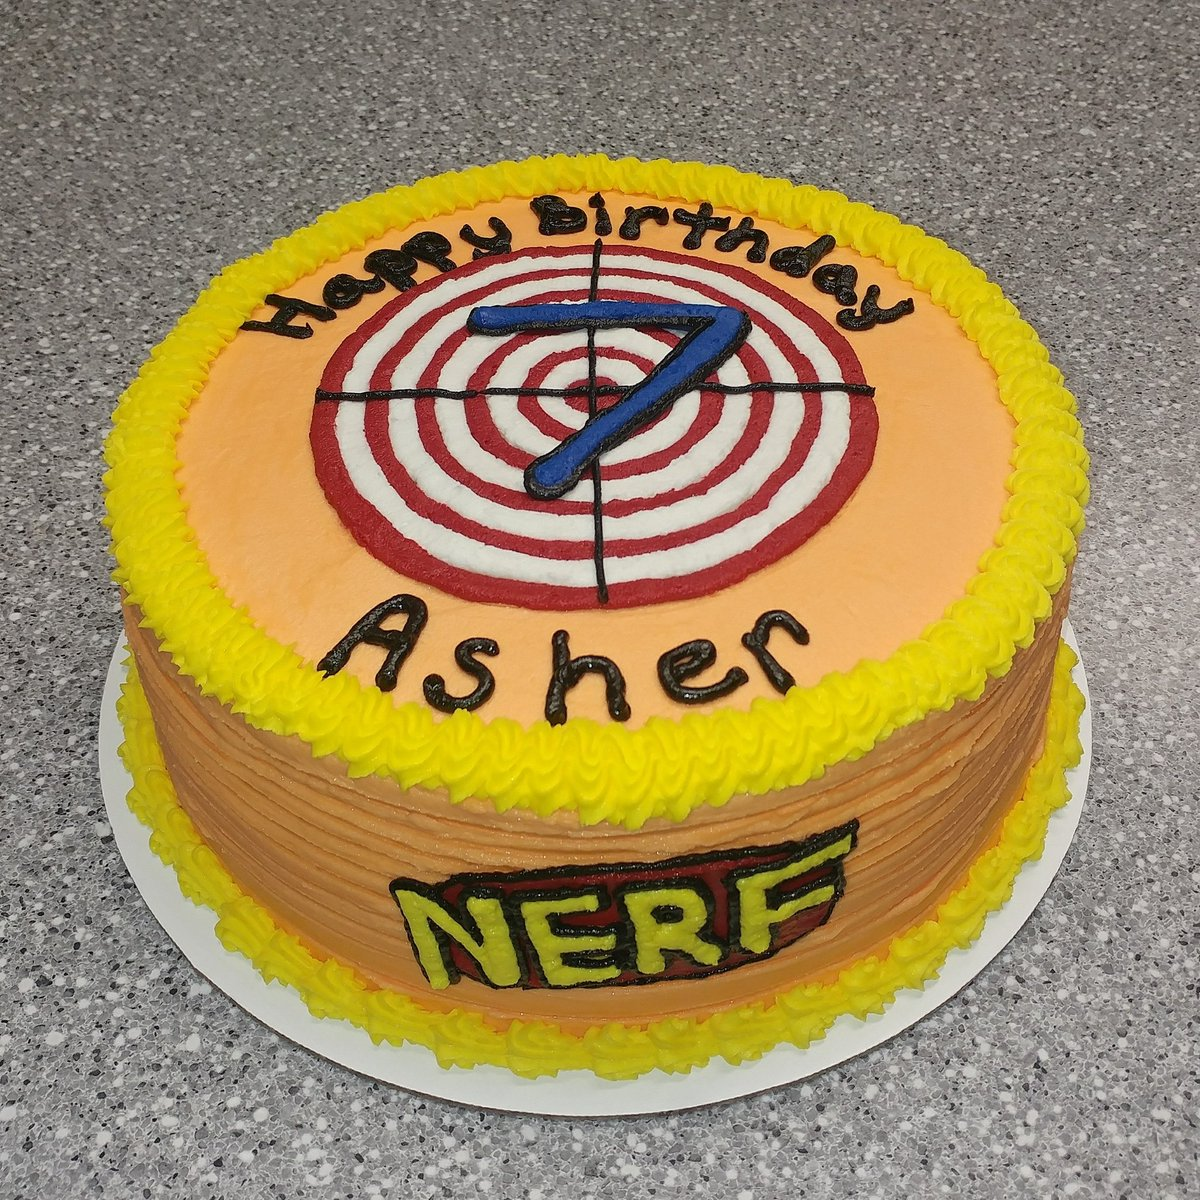 Astounding Cupcakes By Flea On Twitter Nerf Birthday Cake Nerf Birthday Personalised Birthday Cards Veneteletsinfo